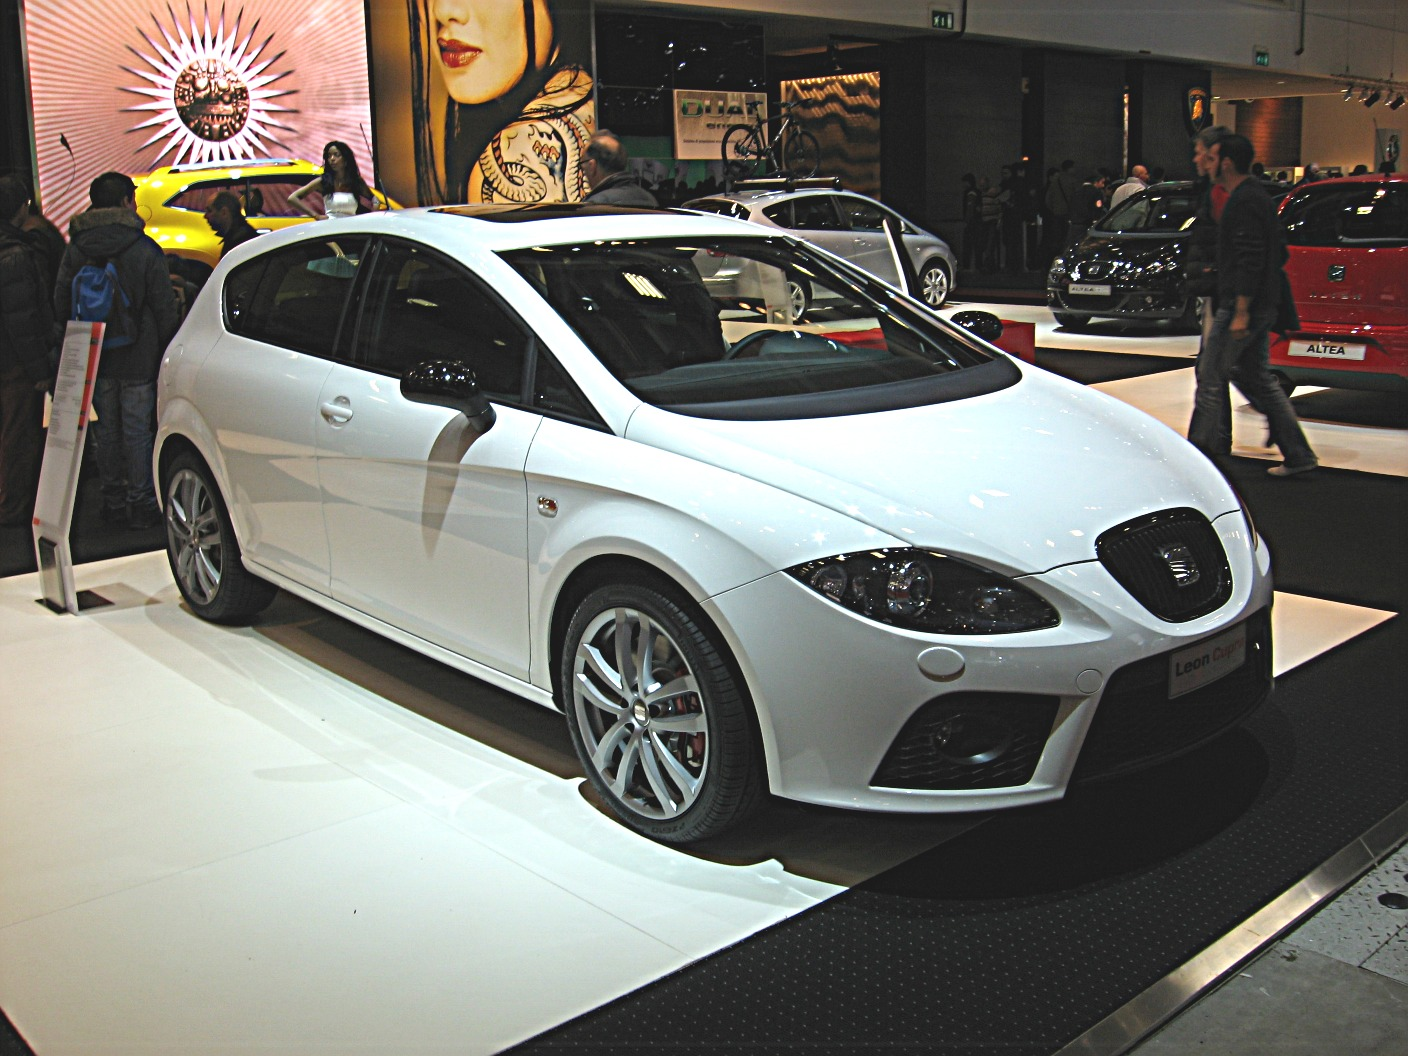 file seat leon cupra mk2 jpg wikimedia commons. Black Bedroom Furniture Sets. Home Design Ideas